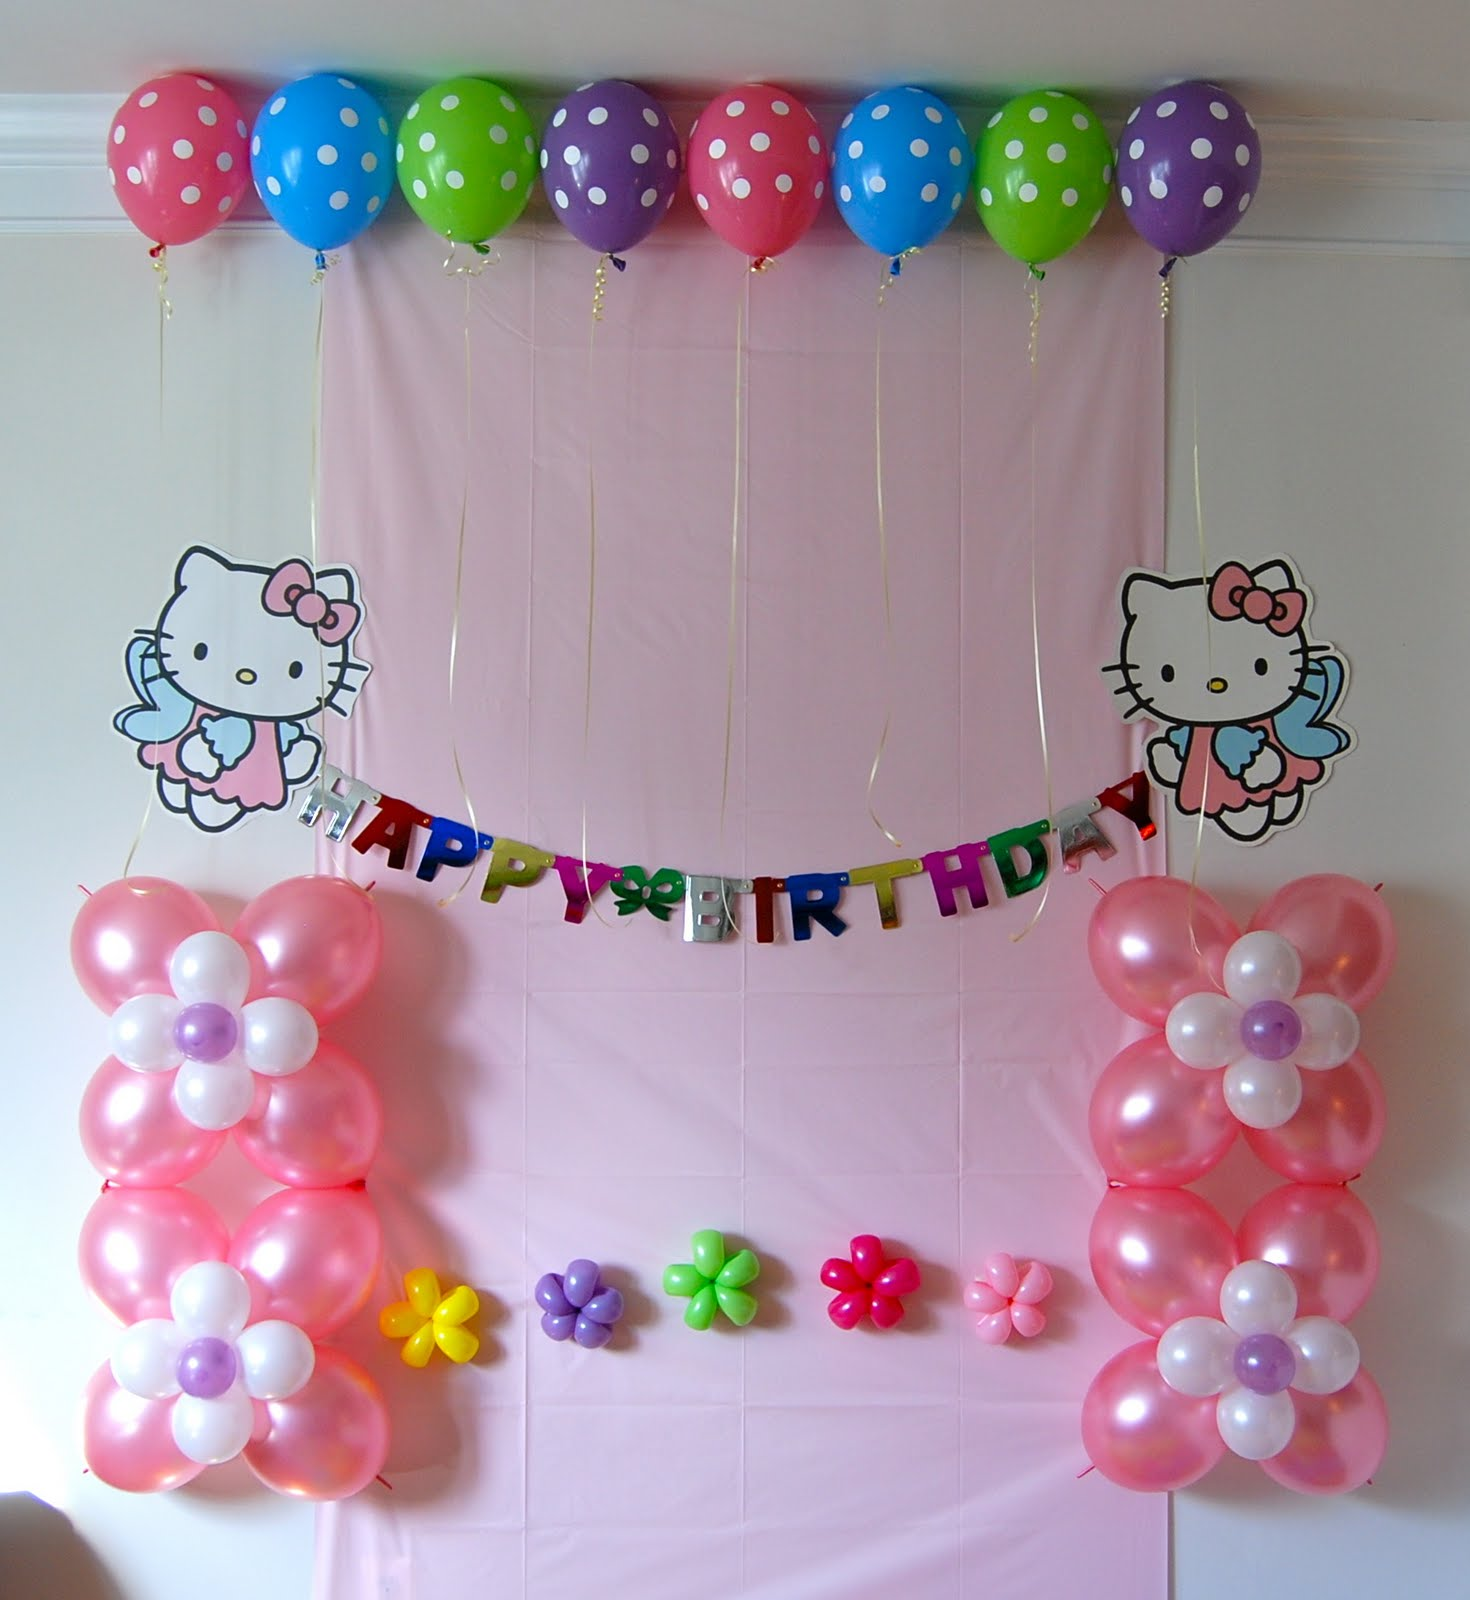 bday decoration ideas ; Birthday-Decor-Ideas-Simple-Birthday-Wall-Decoration-Ideas